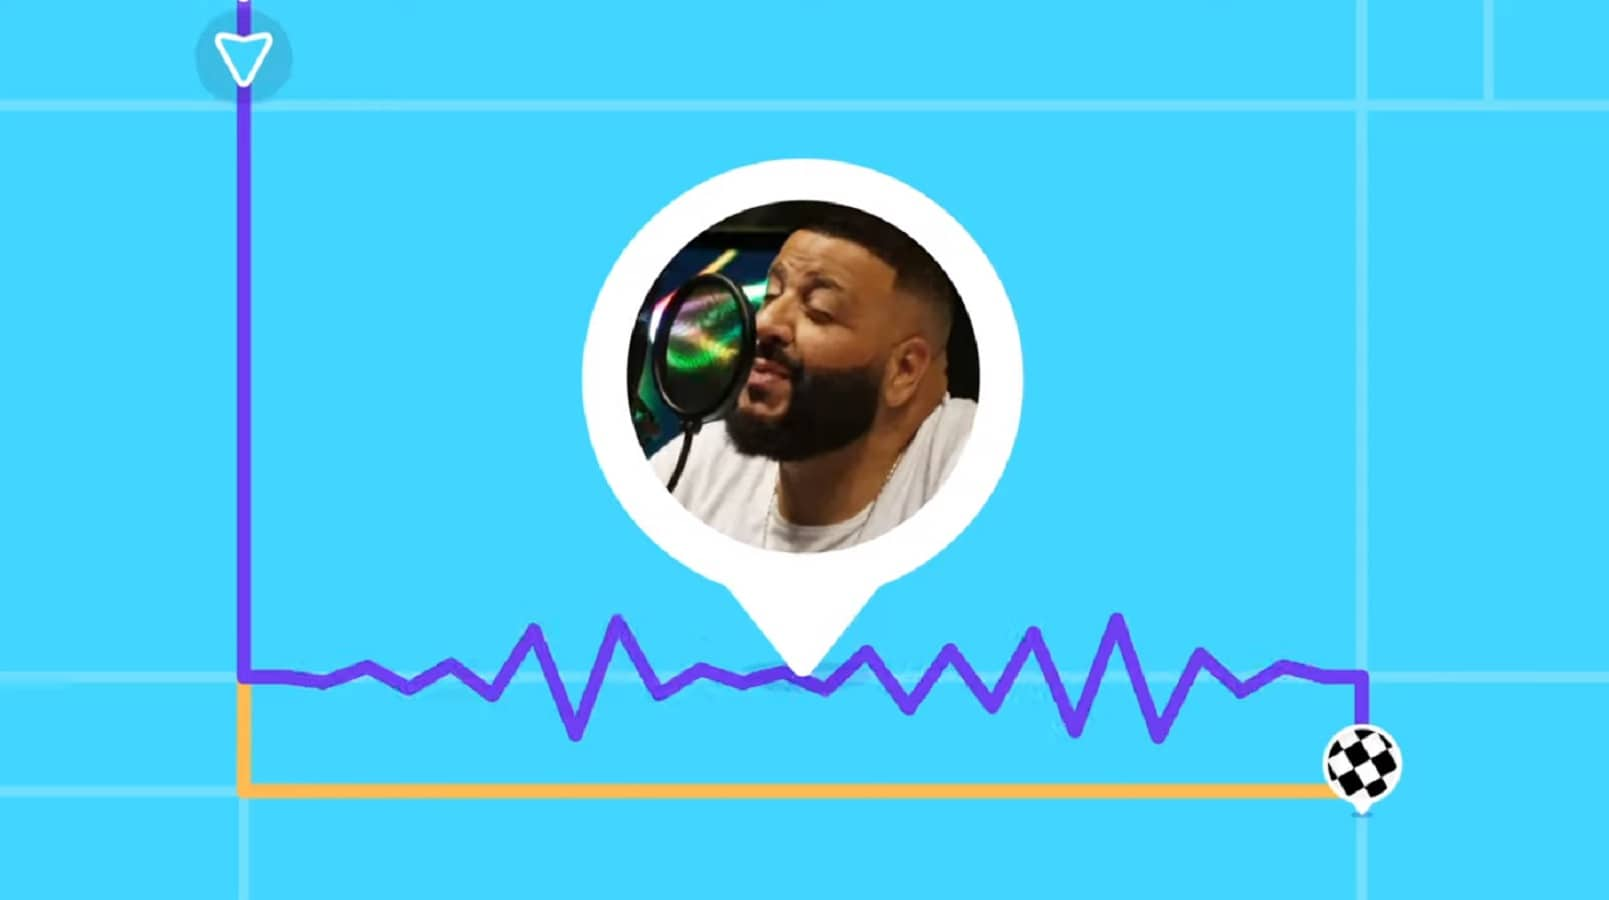 You can now use DJ Khaled as the voice inside your Waze app